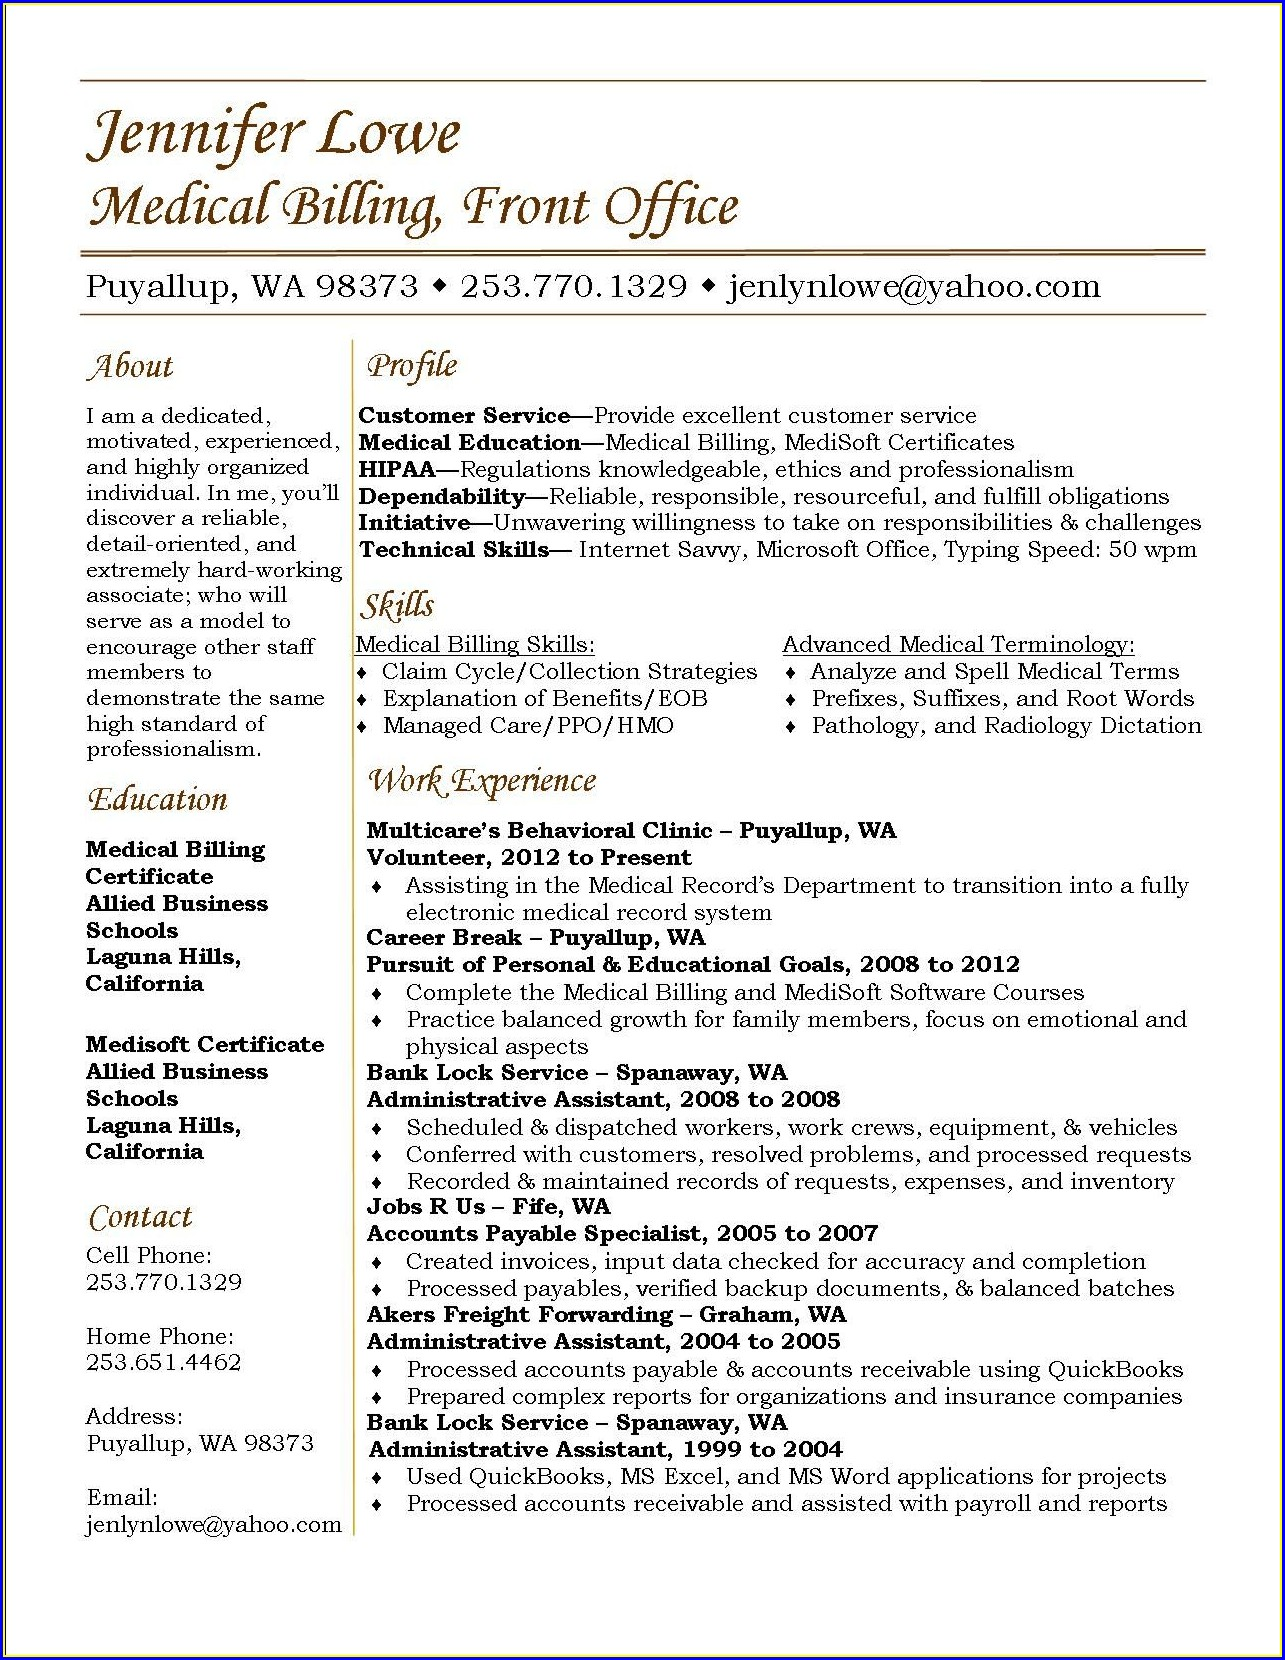 Resume Samples For Medical Billing And Coding